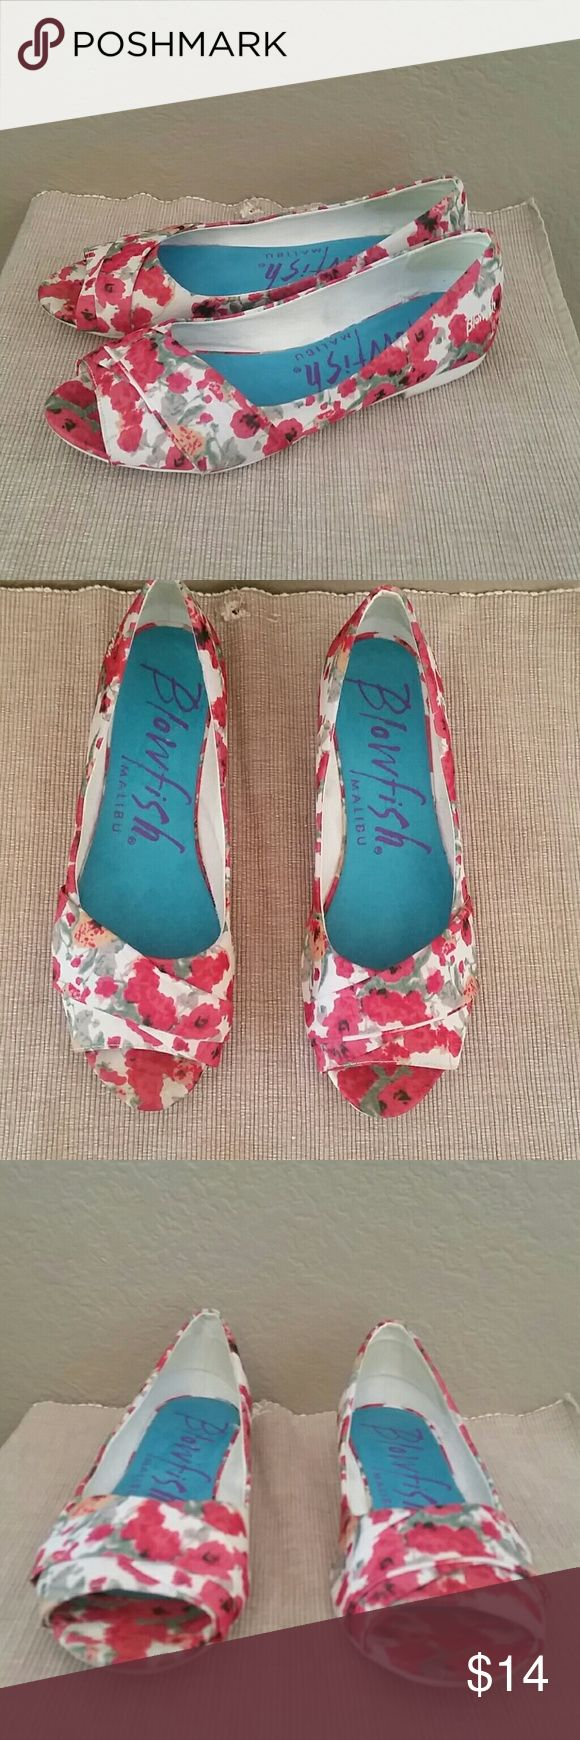 Blowfish floral open toe flats size 9 Blowfish flats, Floral print, open toe, pre-owned, size 9, Blowfish Shoes Flats & Loafers